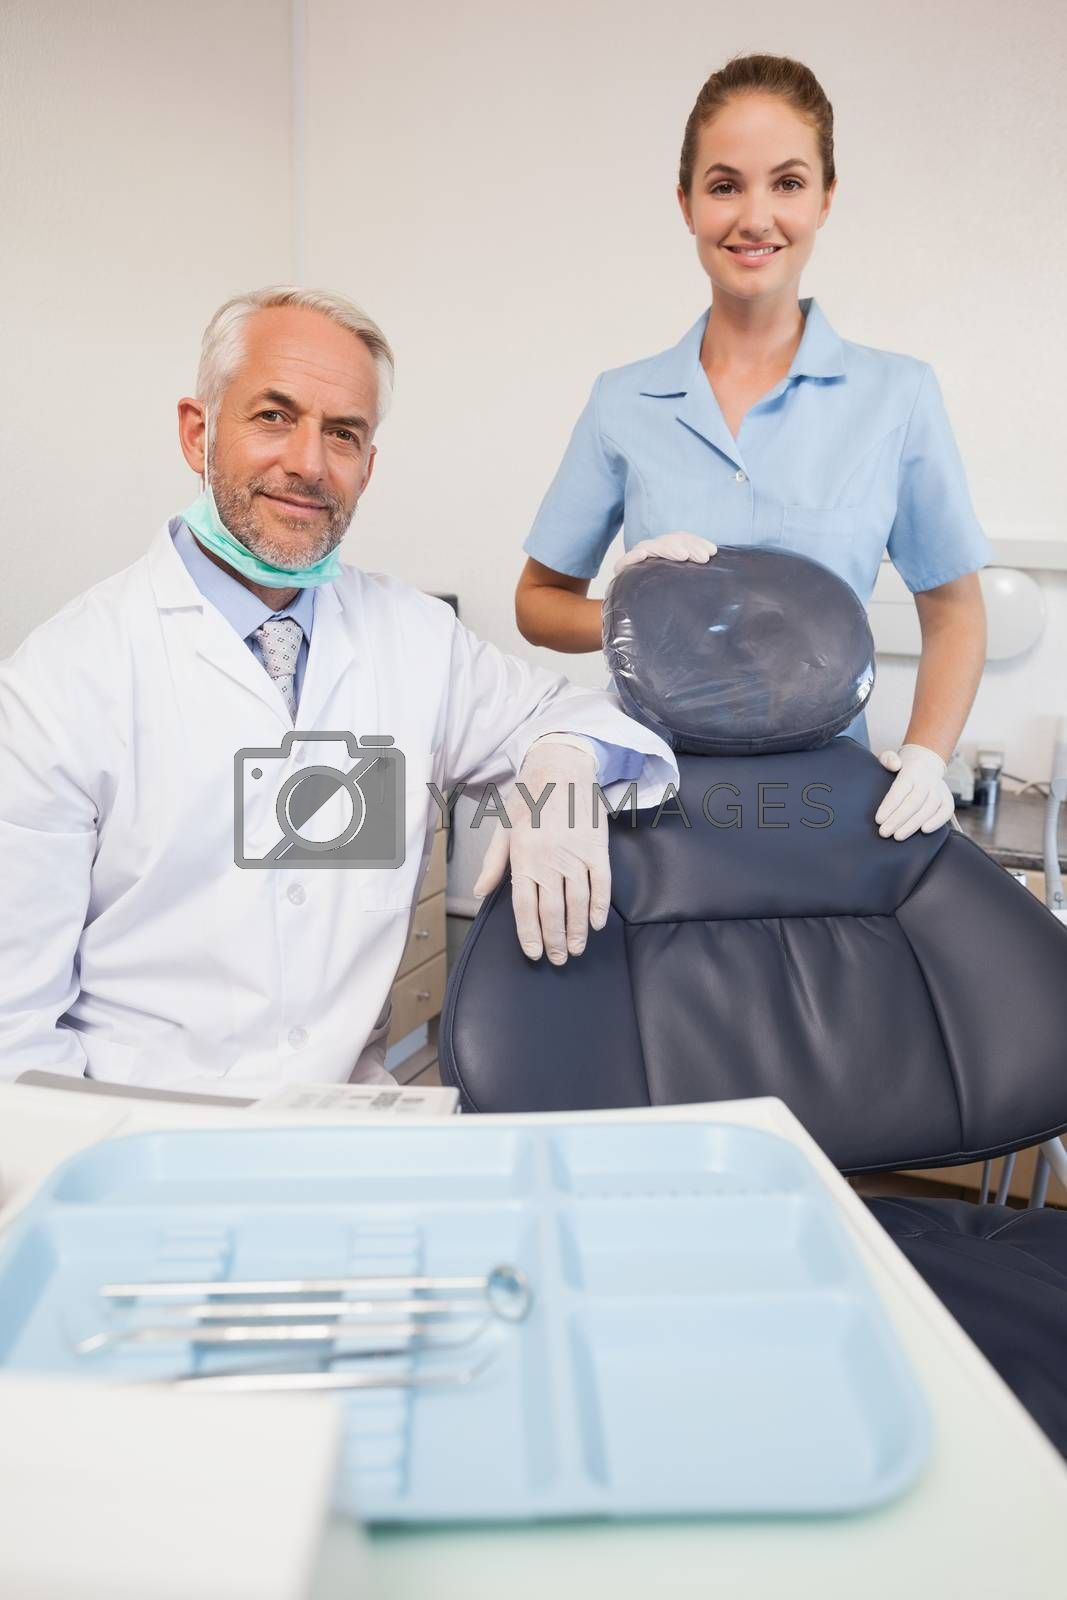 Dentist and assistant smiling at camera by Wavebreakmedia